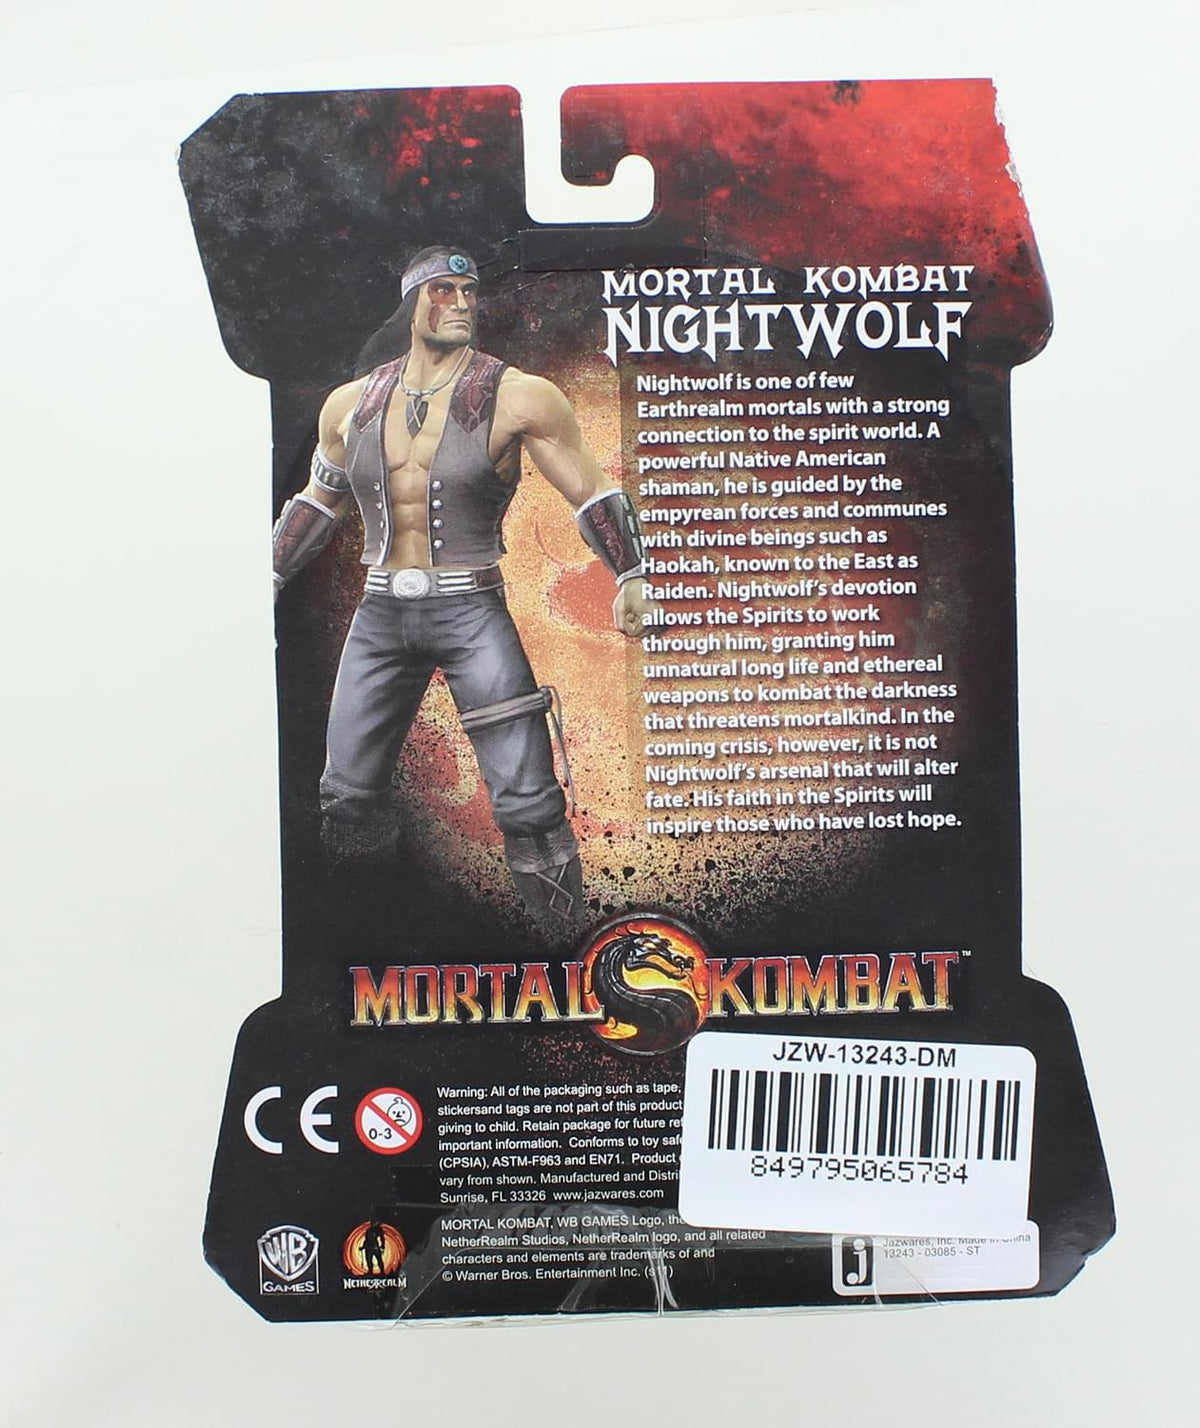 Mortal Kombat 4 Inch Nightwolf Action Figure | Damaged Package